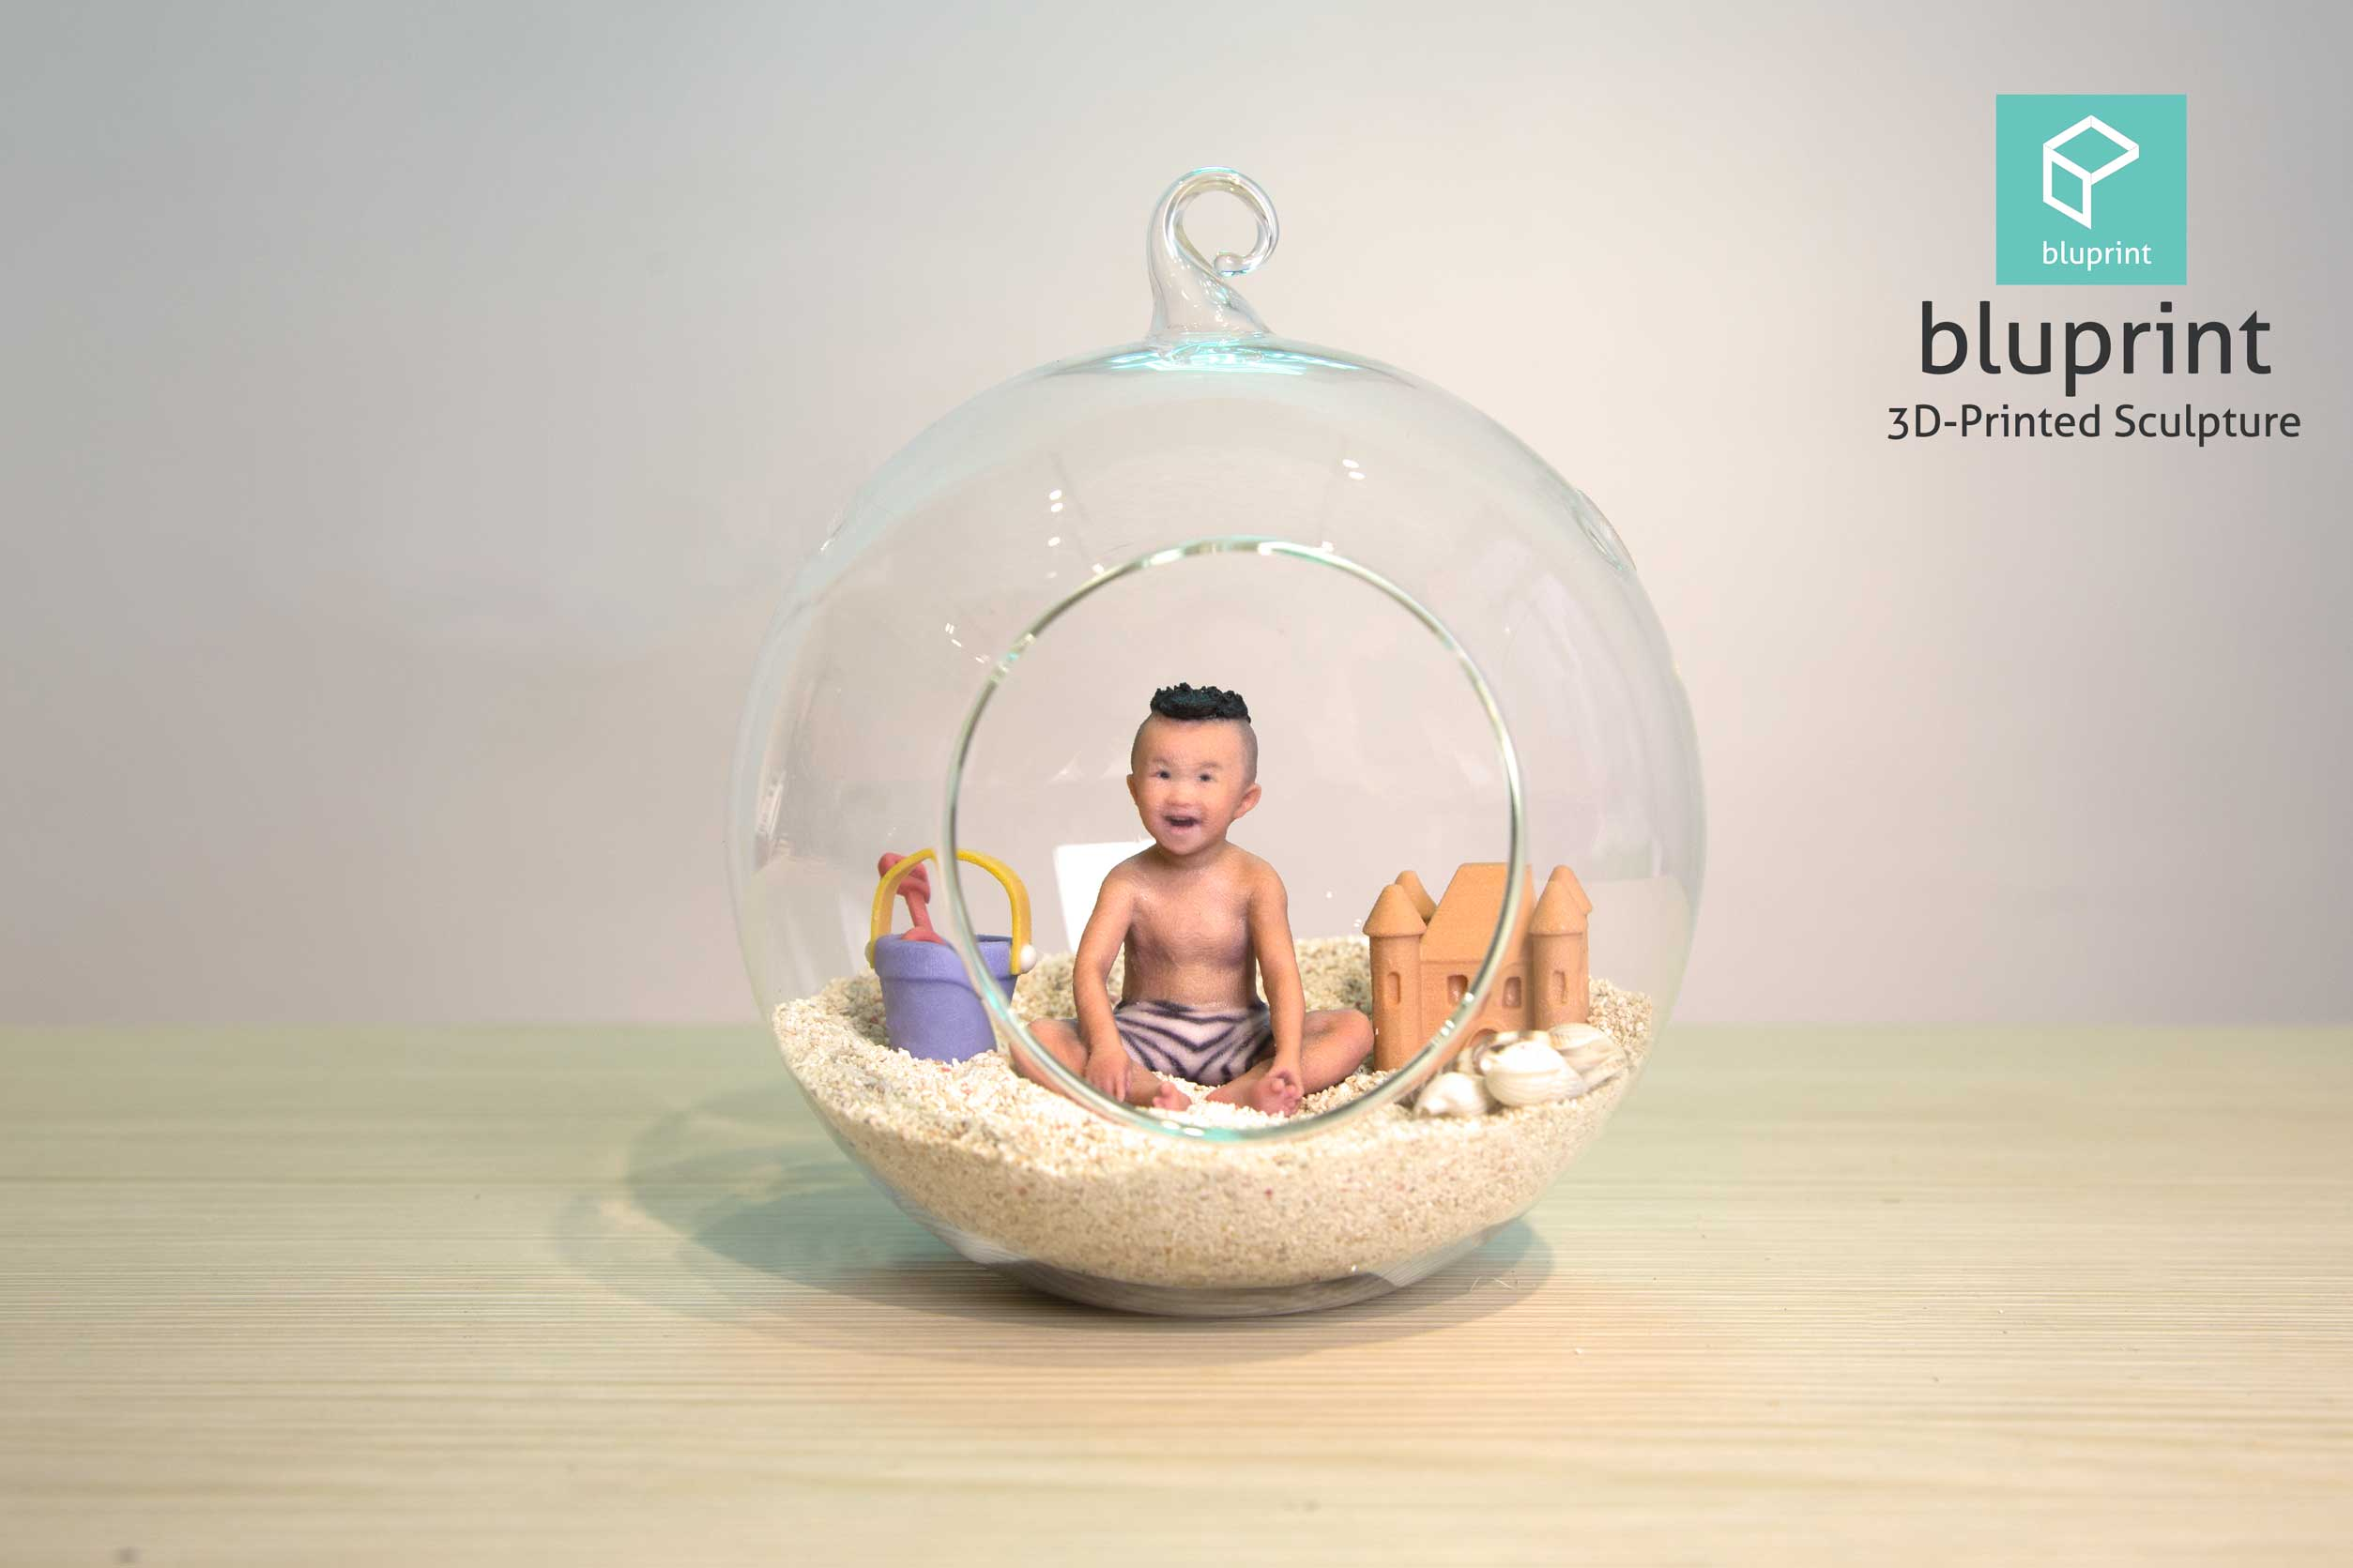 Bluprint 3D Figure Sculpture Hong Kong Kid Boy Beach Terrarium